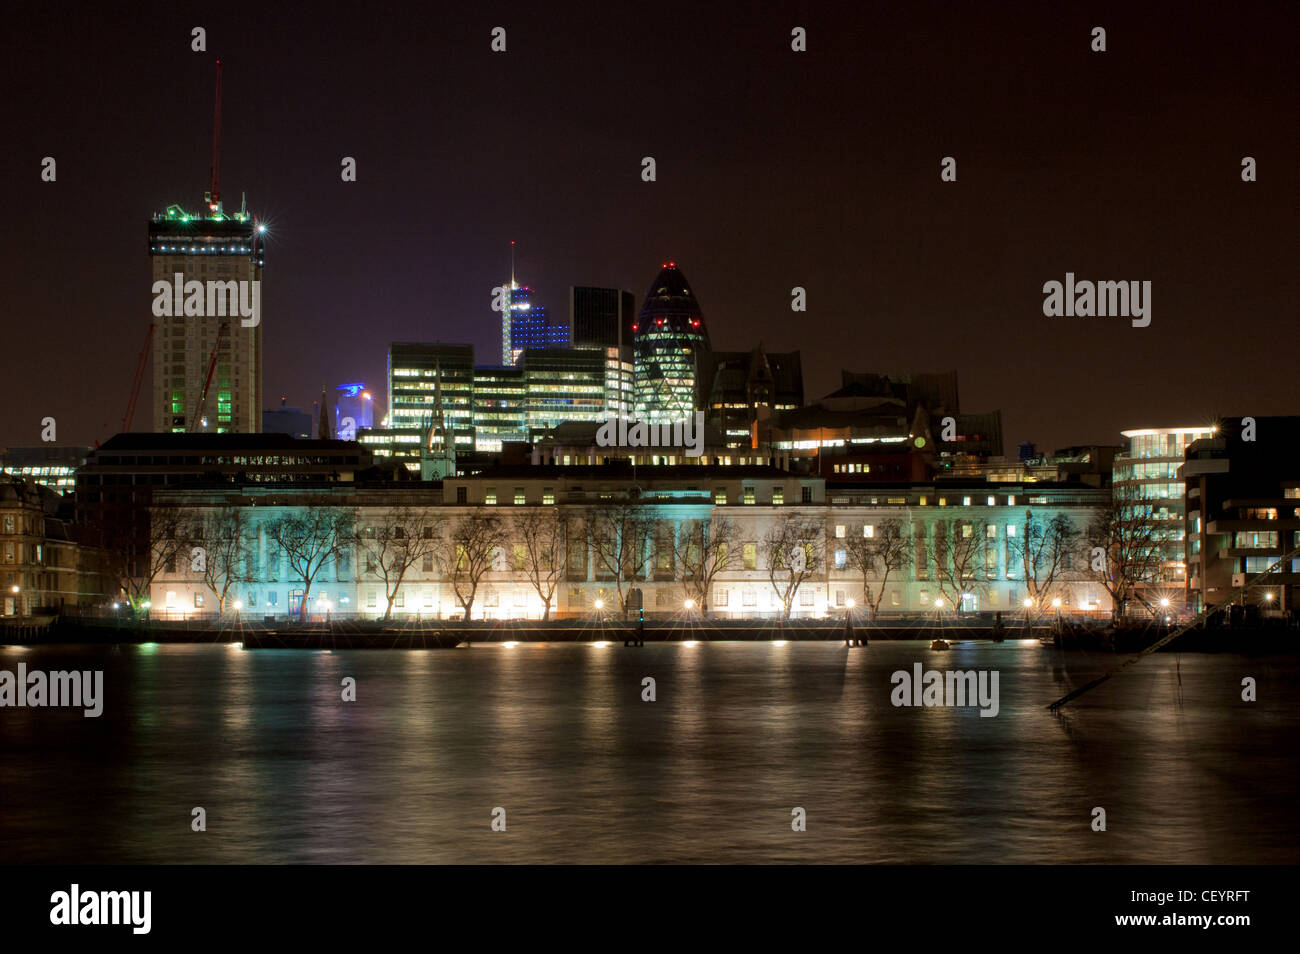 Custom House overlooking the river Thames in London. - Stock Image